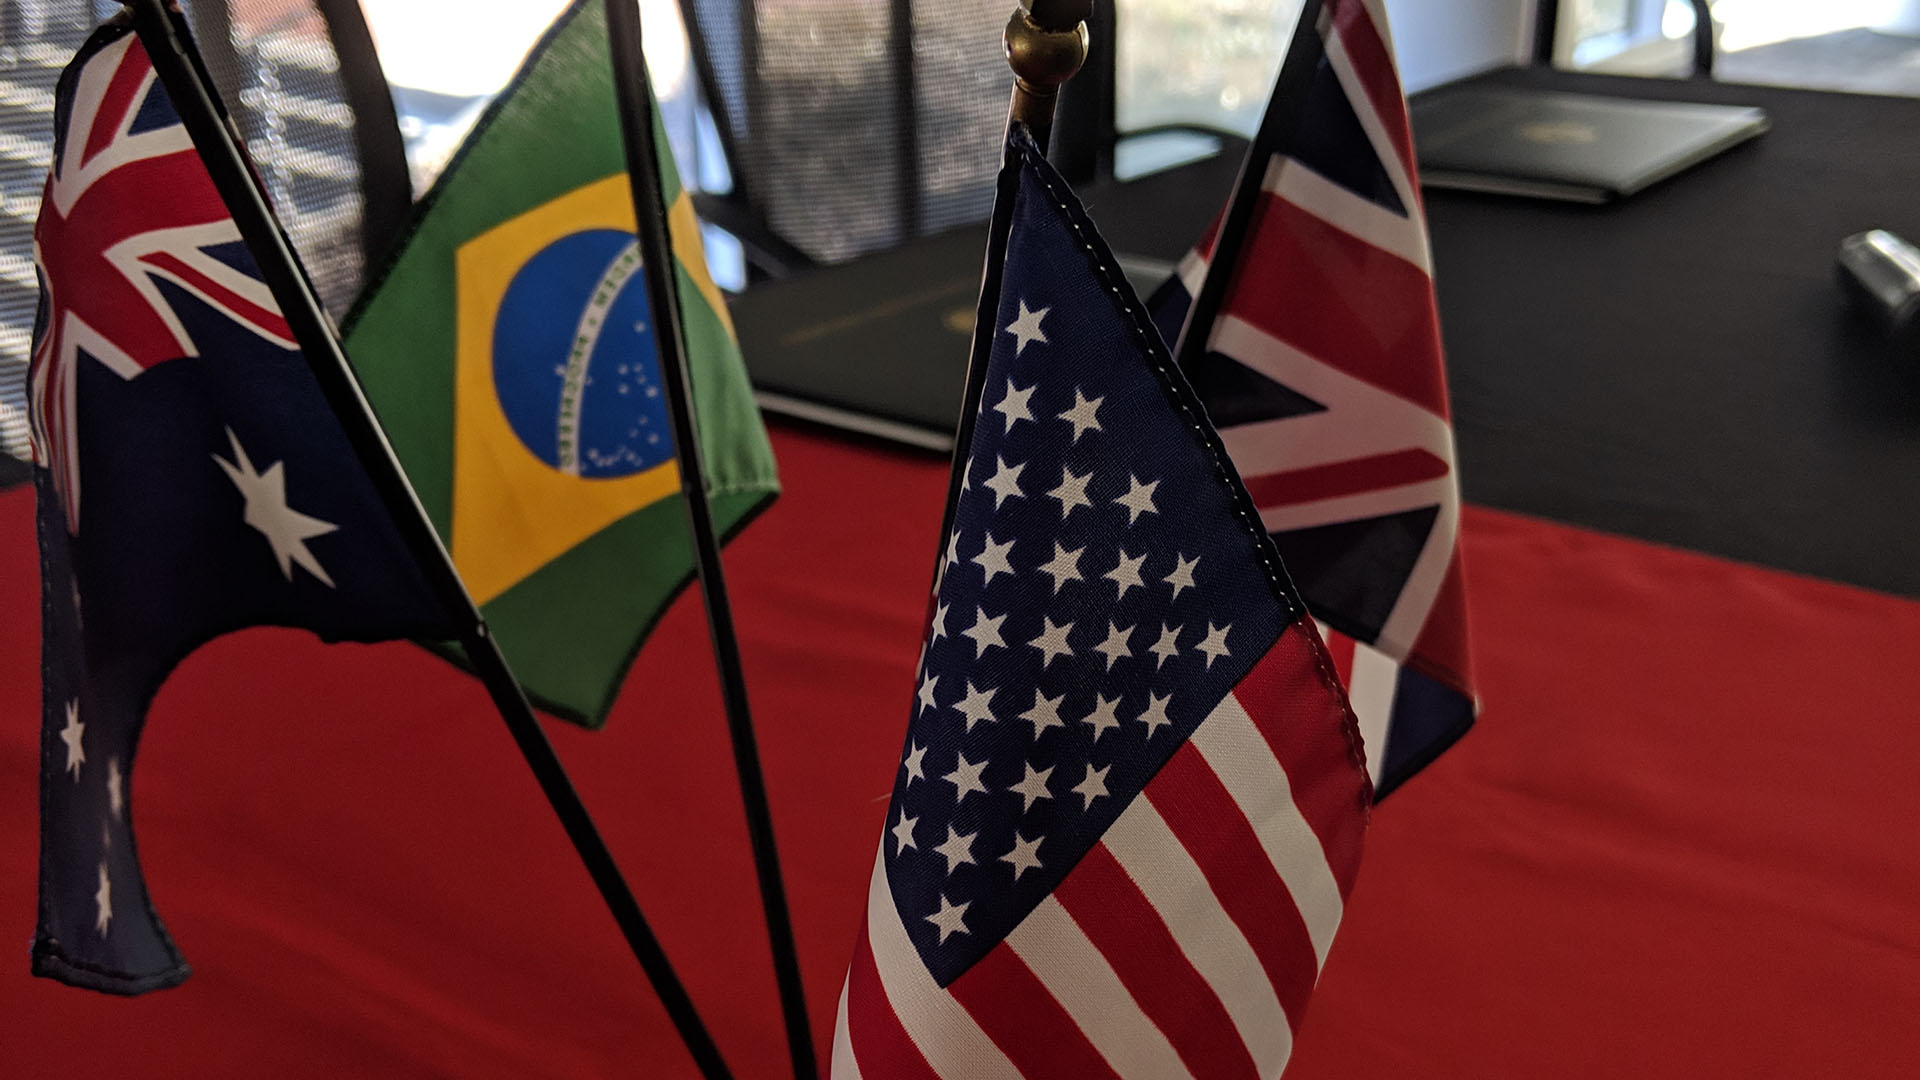 Image from 2019 UGPN conference of Australian, Brazilian, UK and USA flags on a deskflags